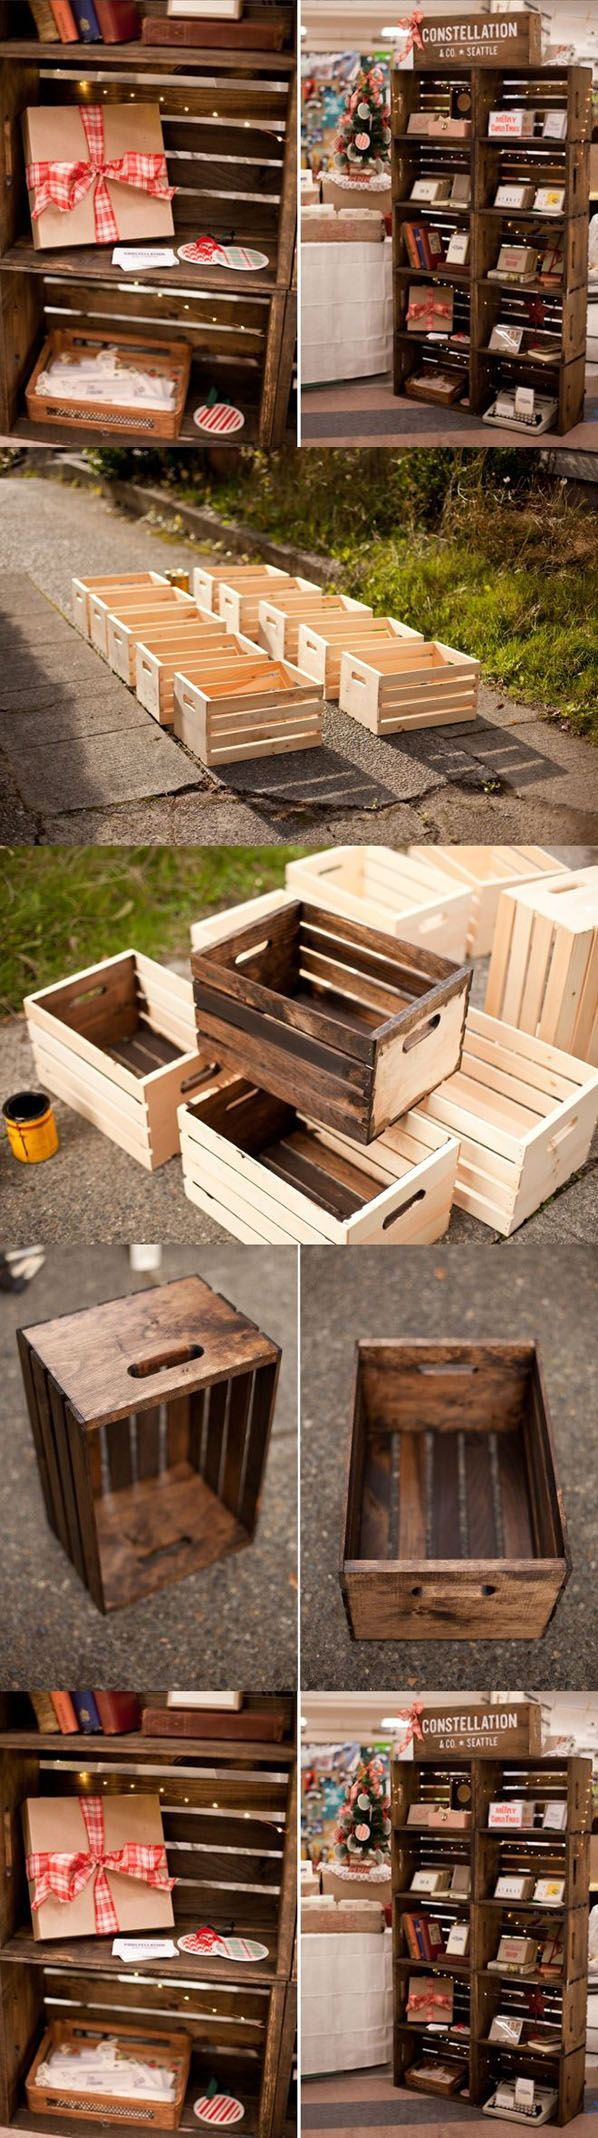 Diy Great Wood Container | DIY & Crafts Tutorials